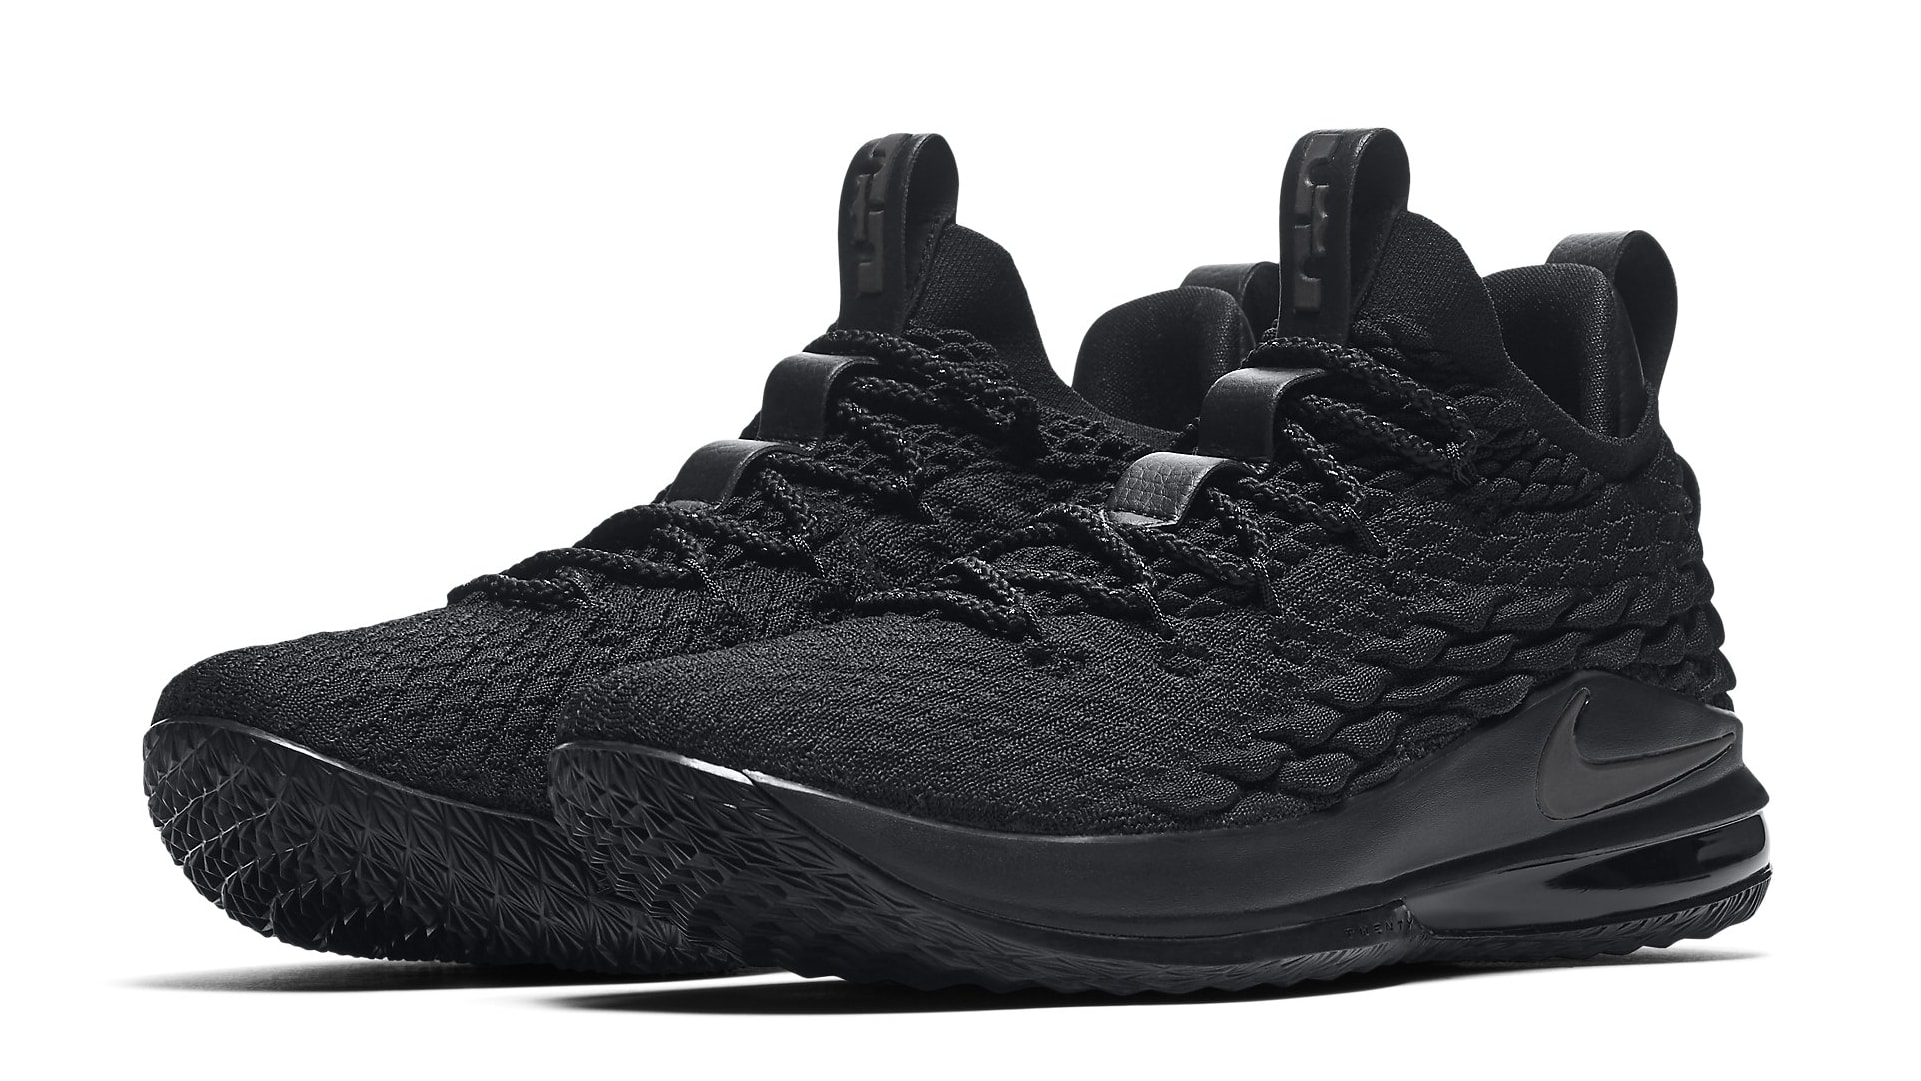 471ad817bc01 NIKE Mens Lebron 15 Basketball Shoes Black Black